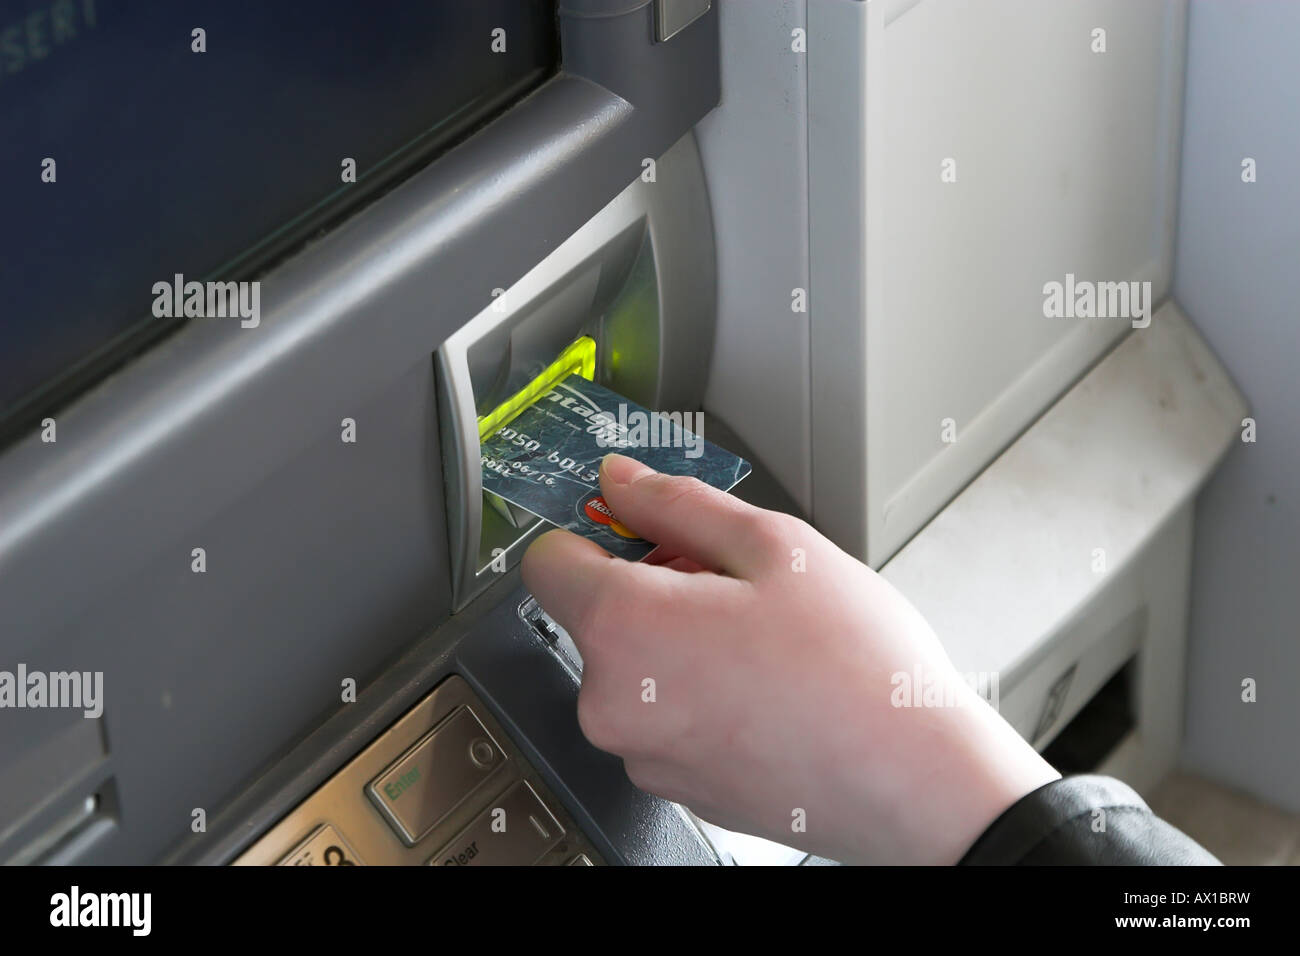 A woman inserting her debit card into an ATM - Stock Image